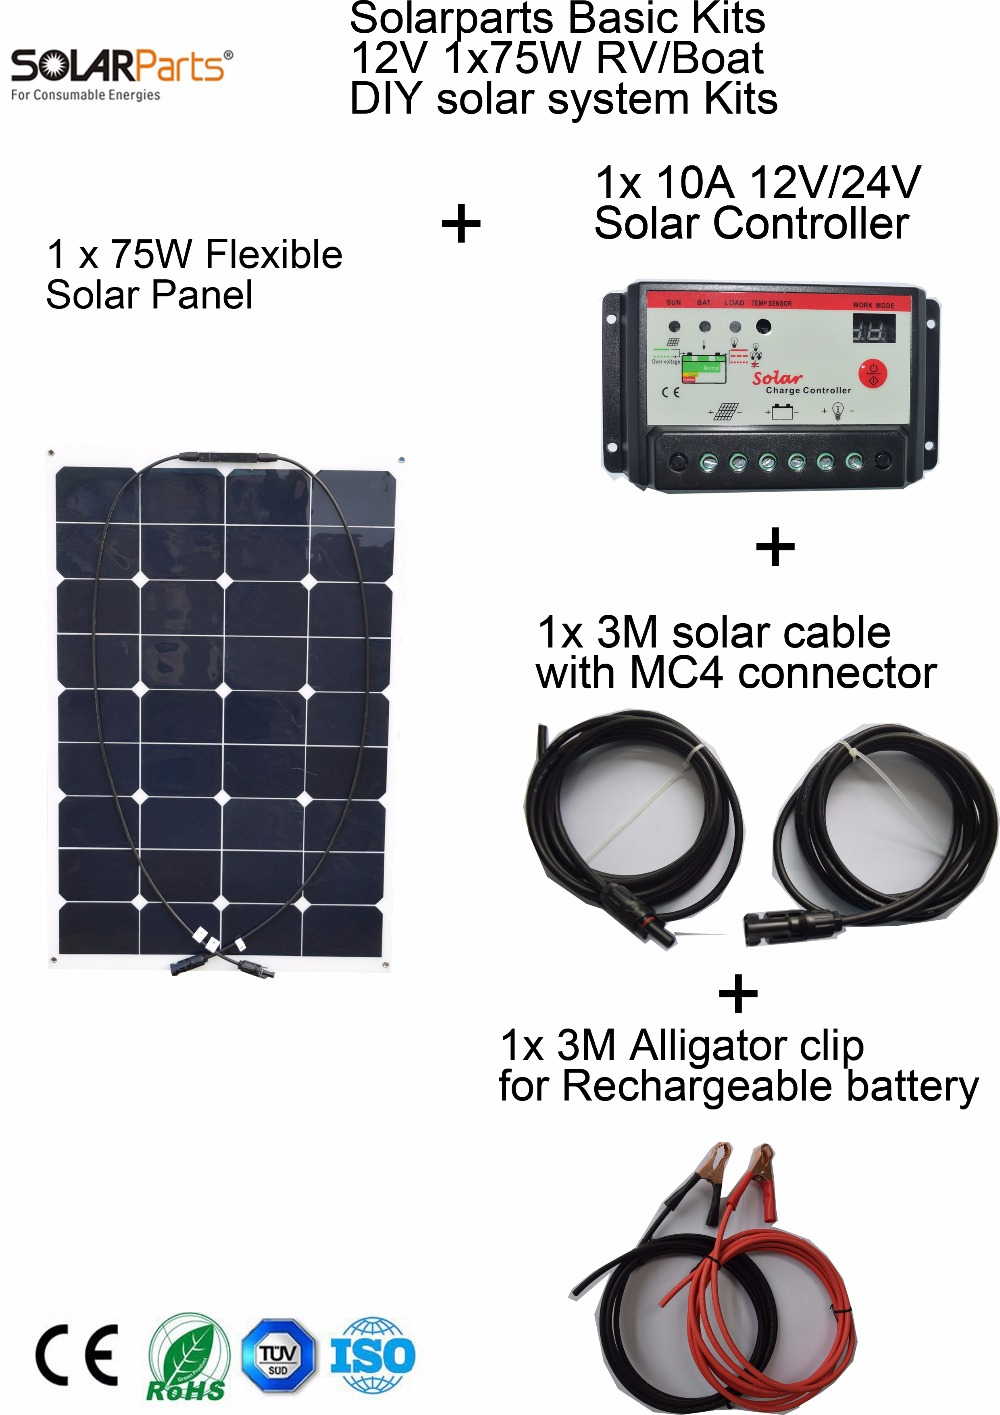 Solarparts Basic Kits 12V1x75W DIY RV/Marine Solar System Kits 75W flexible solar panel+controller+cable outdoor light led light